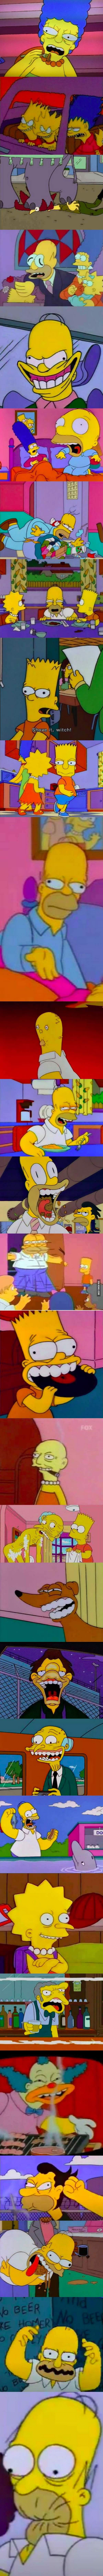 The Best Simpsons Faces - The Crazy Faces Simpsons Characters Make During Animation